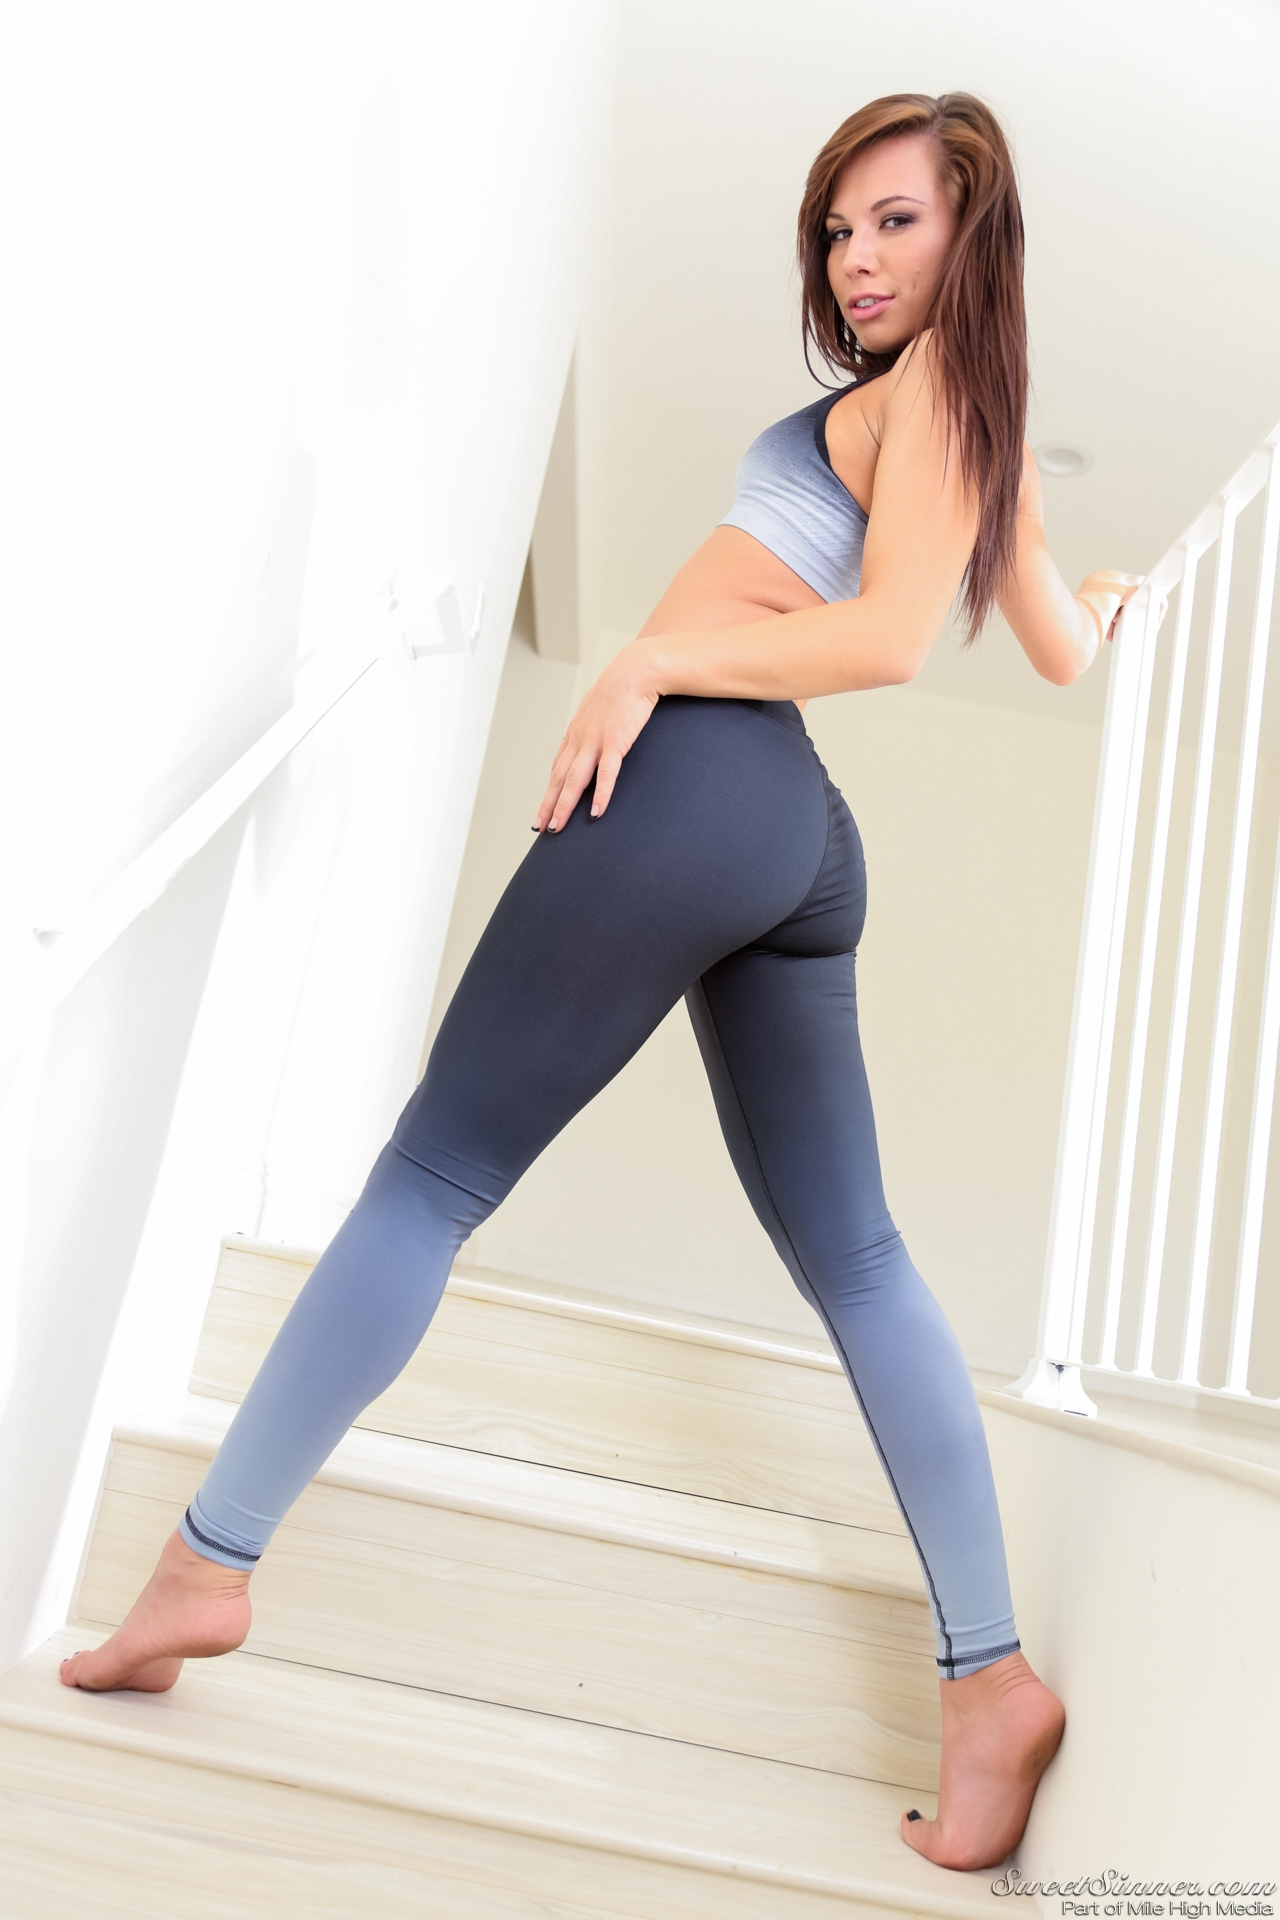 Final, sorry, Skin diamond sexy yoga pants fucks final